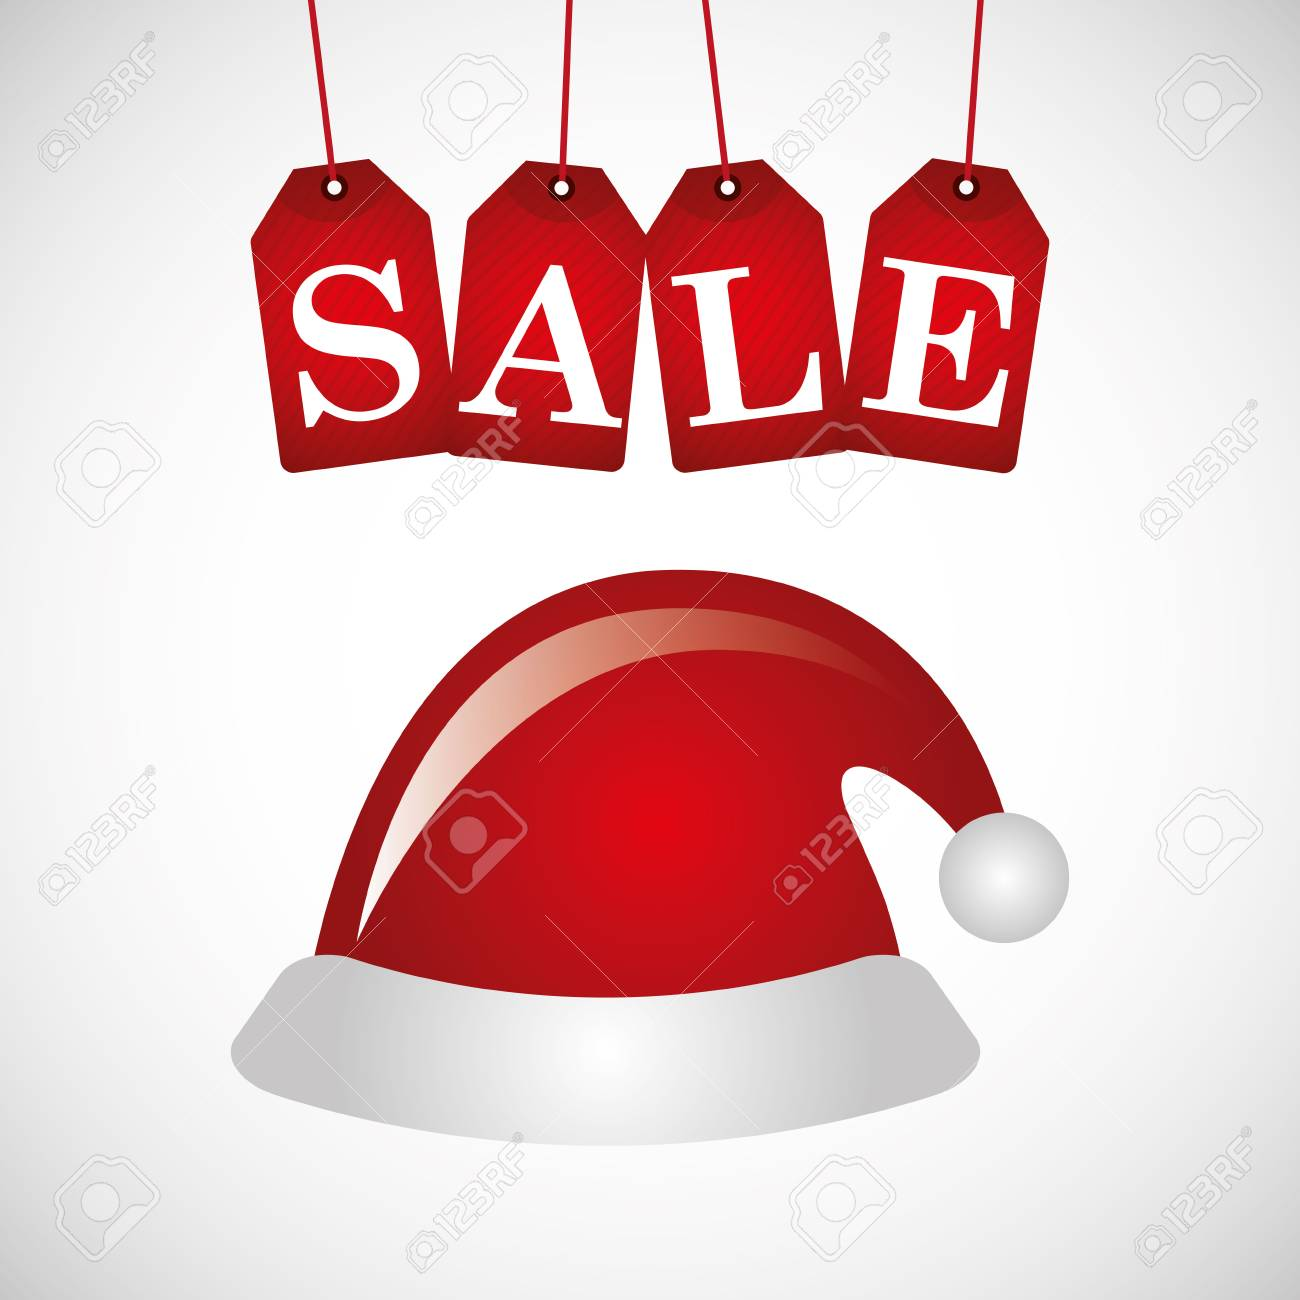 0a6a4565cec0 merry christmas sale happy holiday vector illustration design Stock Vector  - 64870373